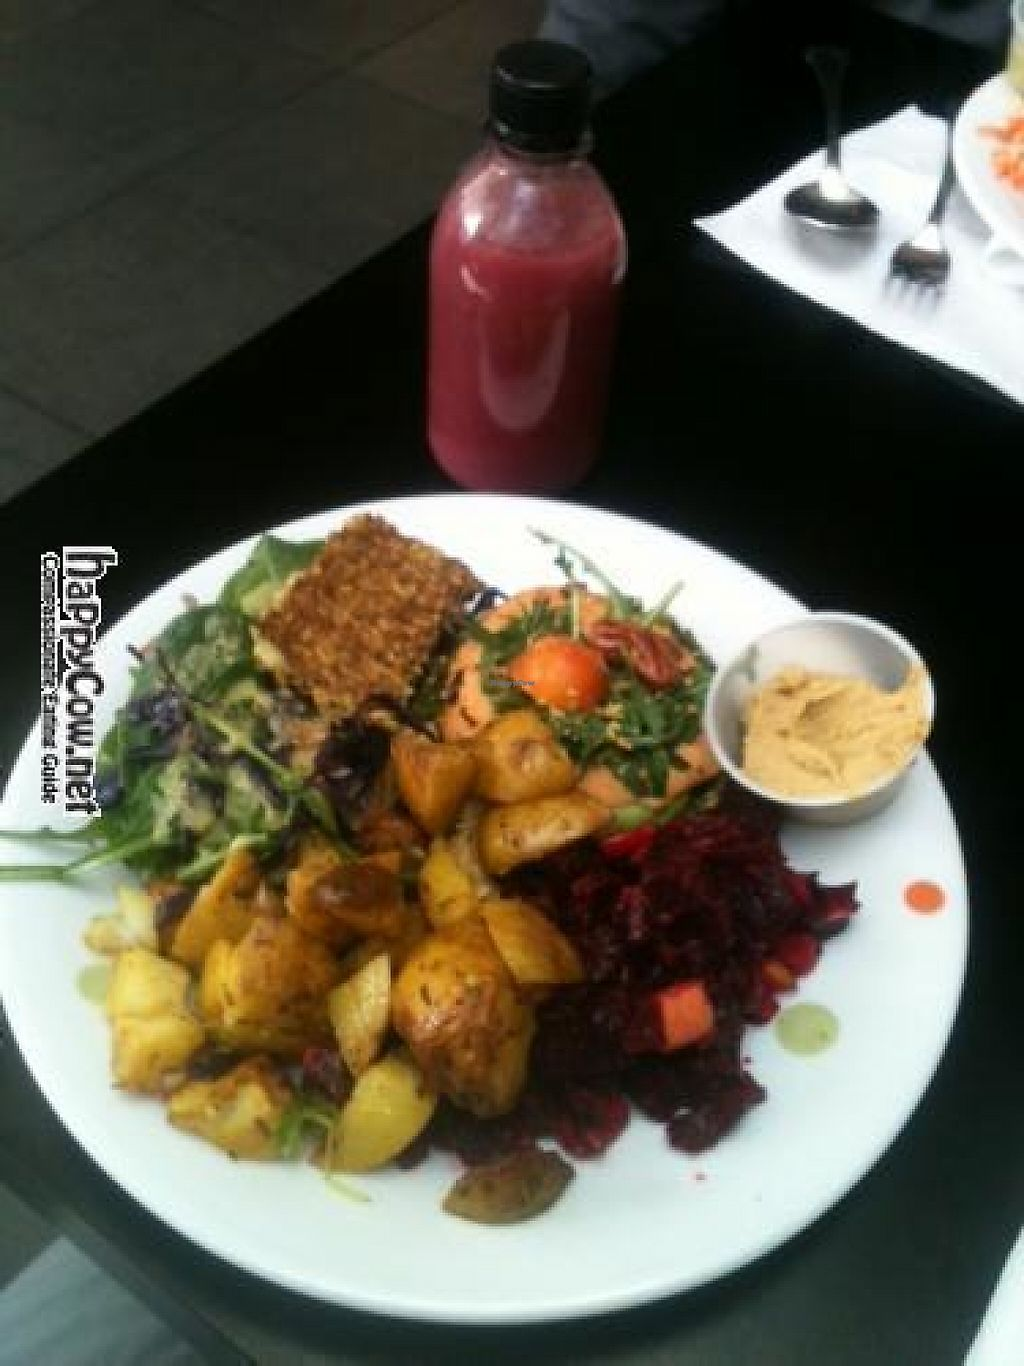 """Photo of Glo - Engjateigur  by <a href=""""/members/profile/ChickpeaDee"""">ChickpeaDee</a> <br/>This is a photo of my all vegan meal at Glo restaurant in Iceland.  I hope you can post this with my review (from ChickpeaDee) <br/> March 19, 2012  - <a href='/contact/abuse/image/28278/262319'>Report</a>"""